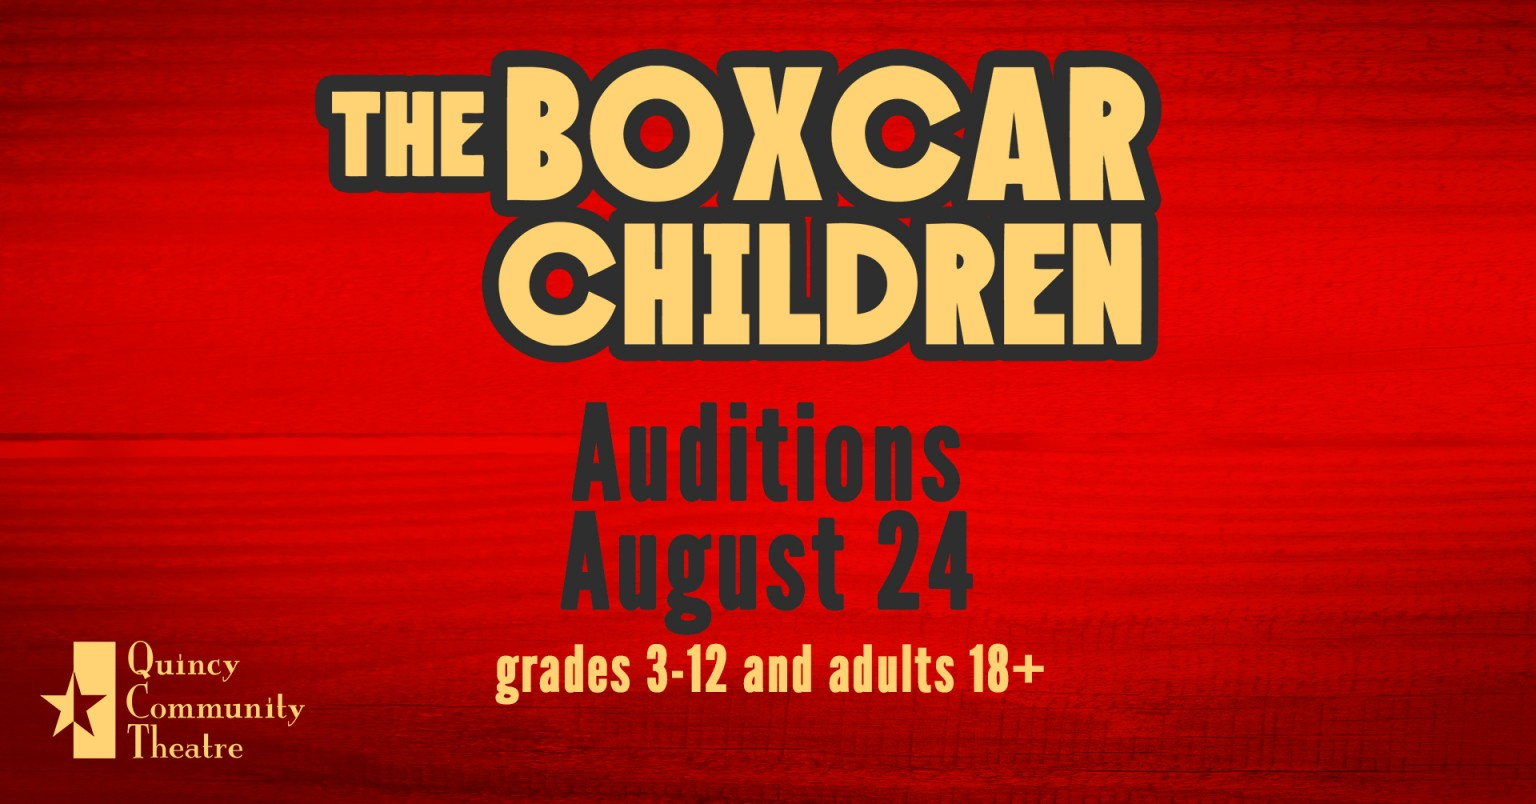 Auditions now open for THE BOXCAR CHILDREN | Quincy